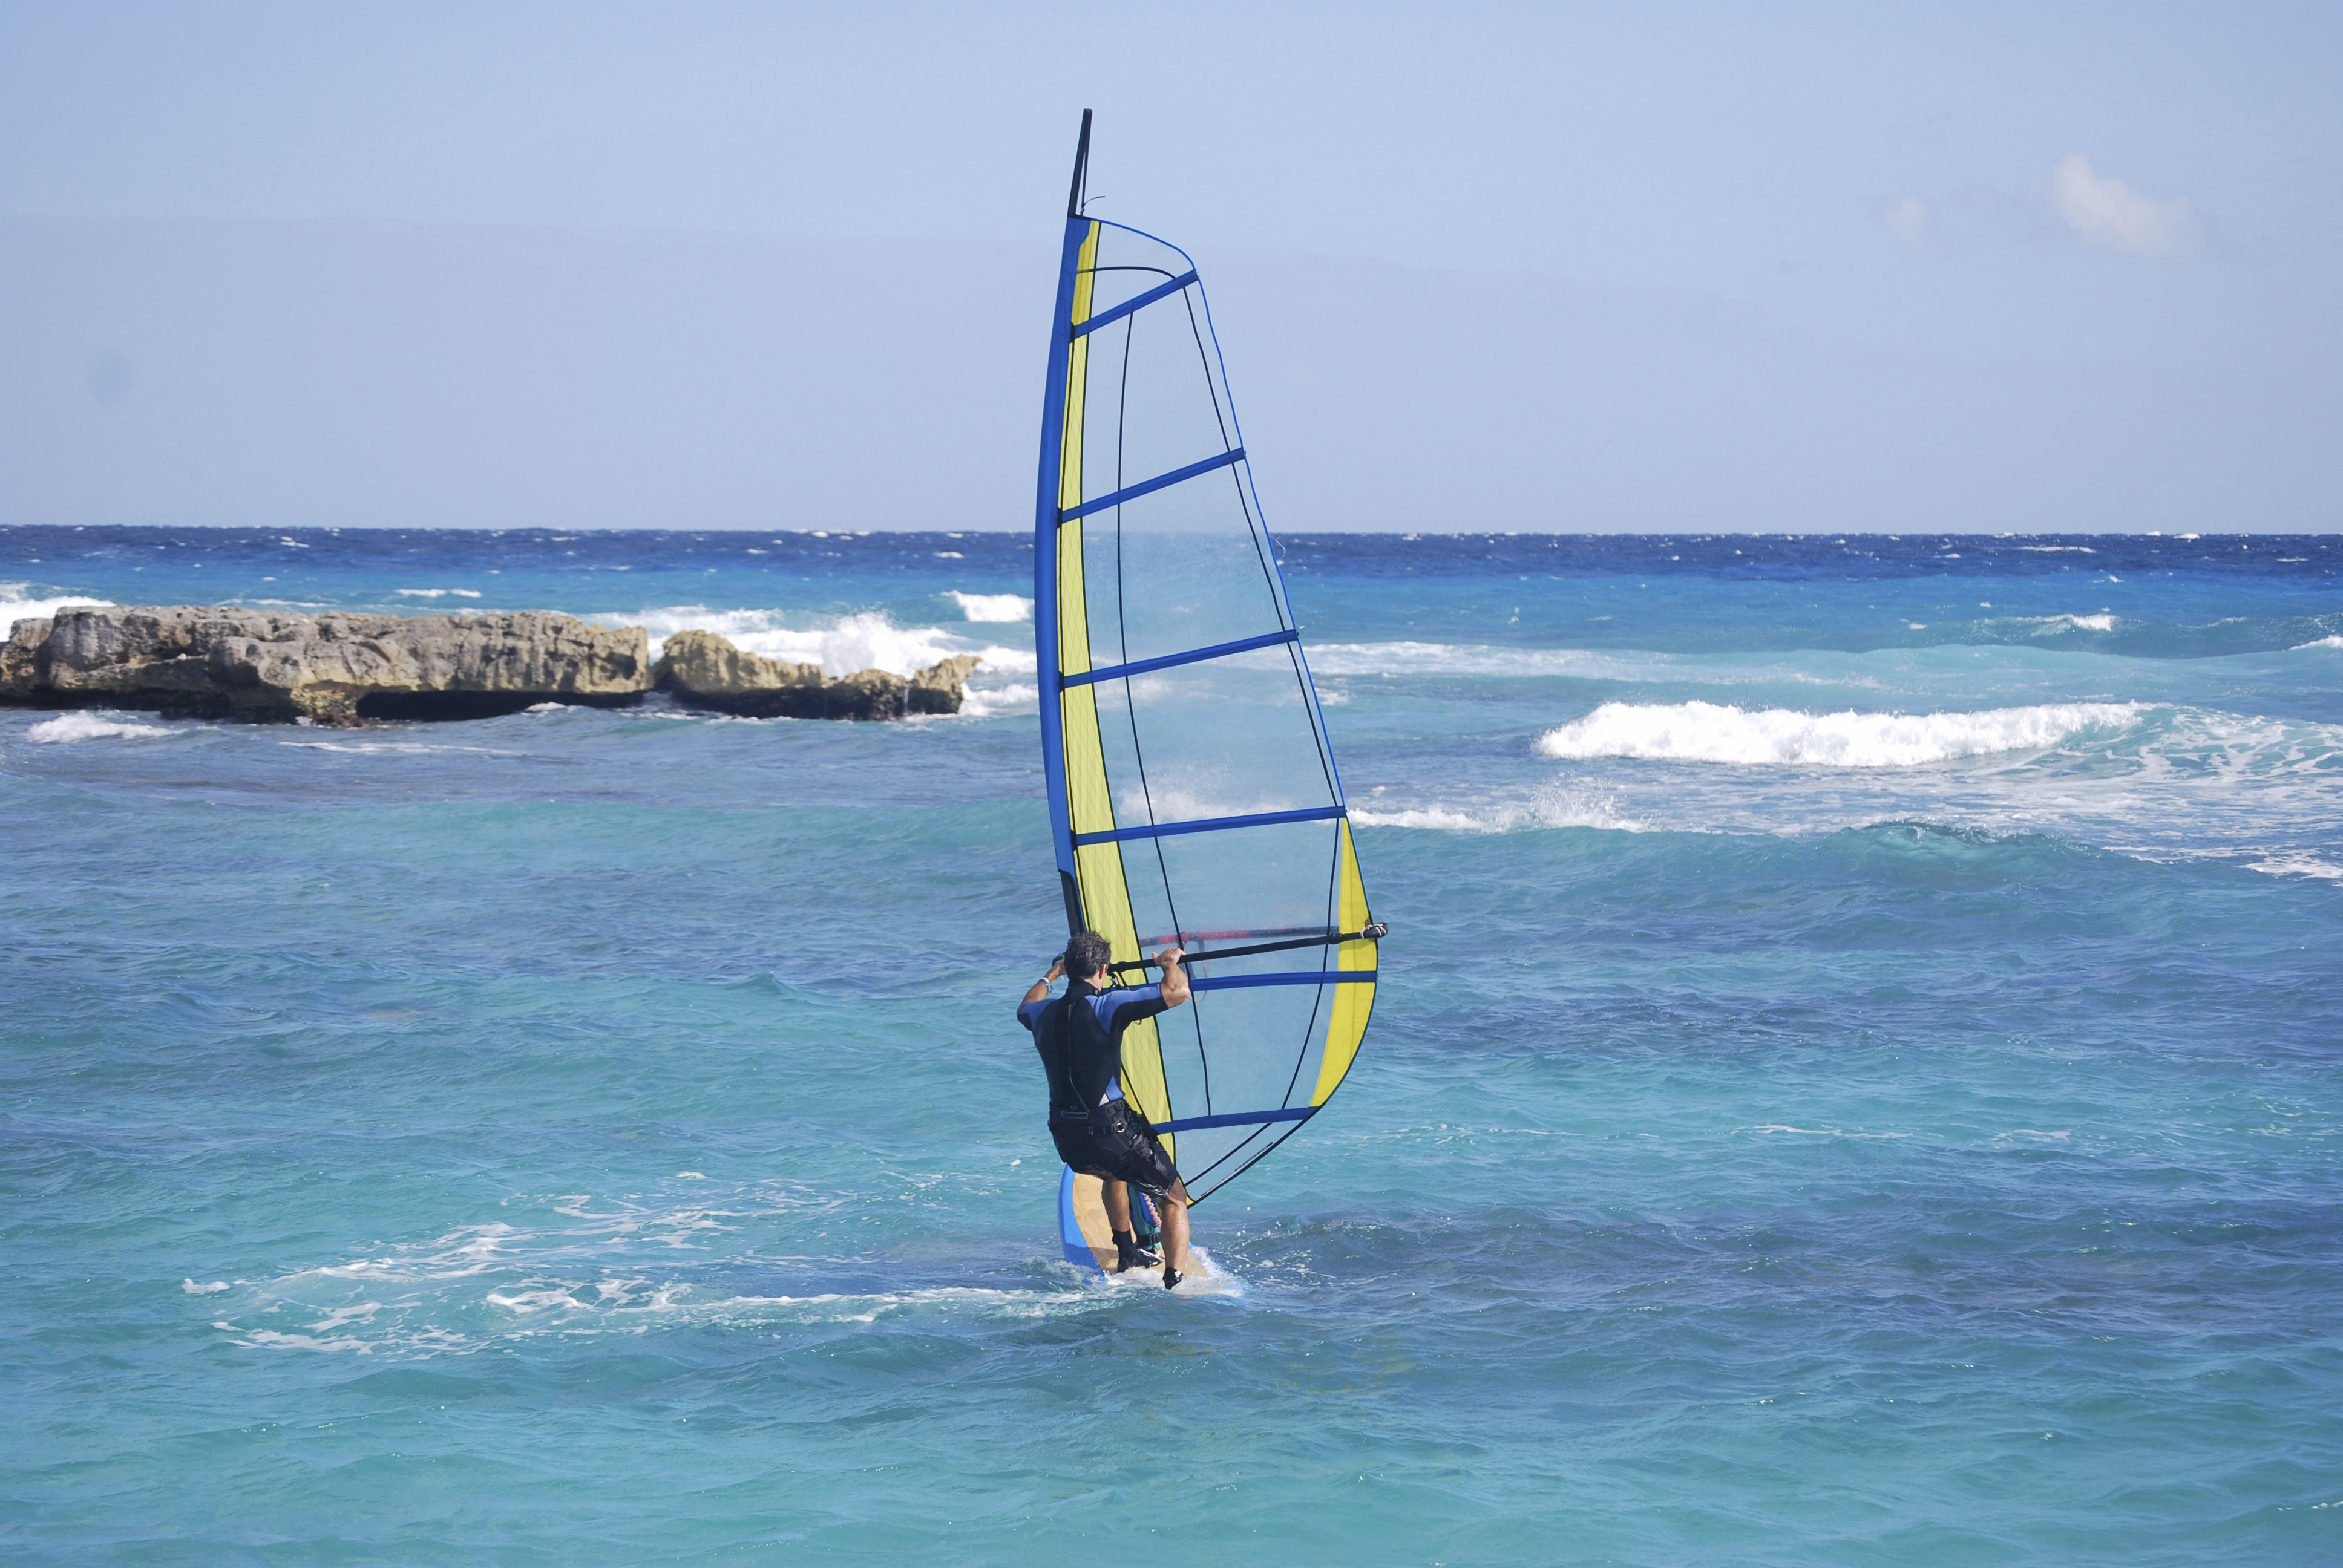 Barbados is great for watersports